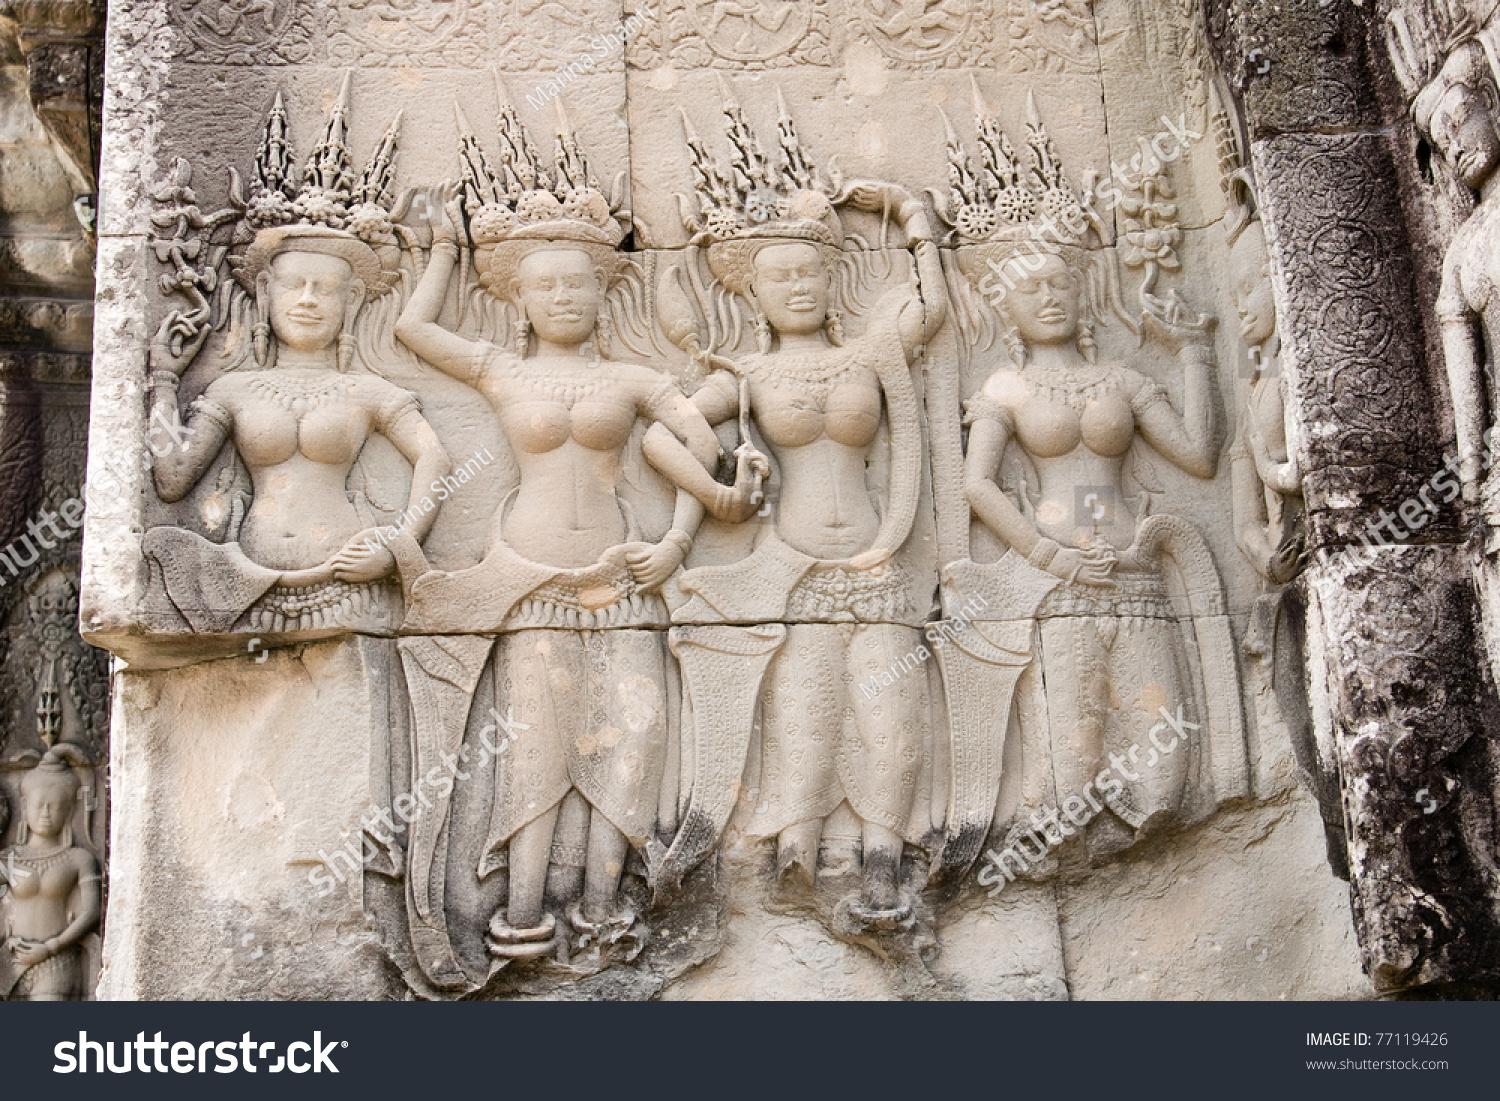 Dancing apsaras an old khmer art carvings on the wall in